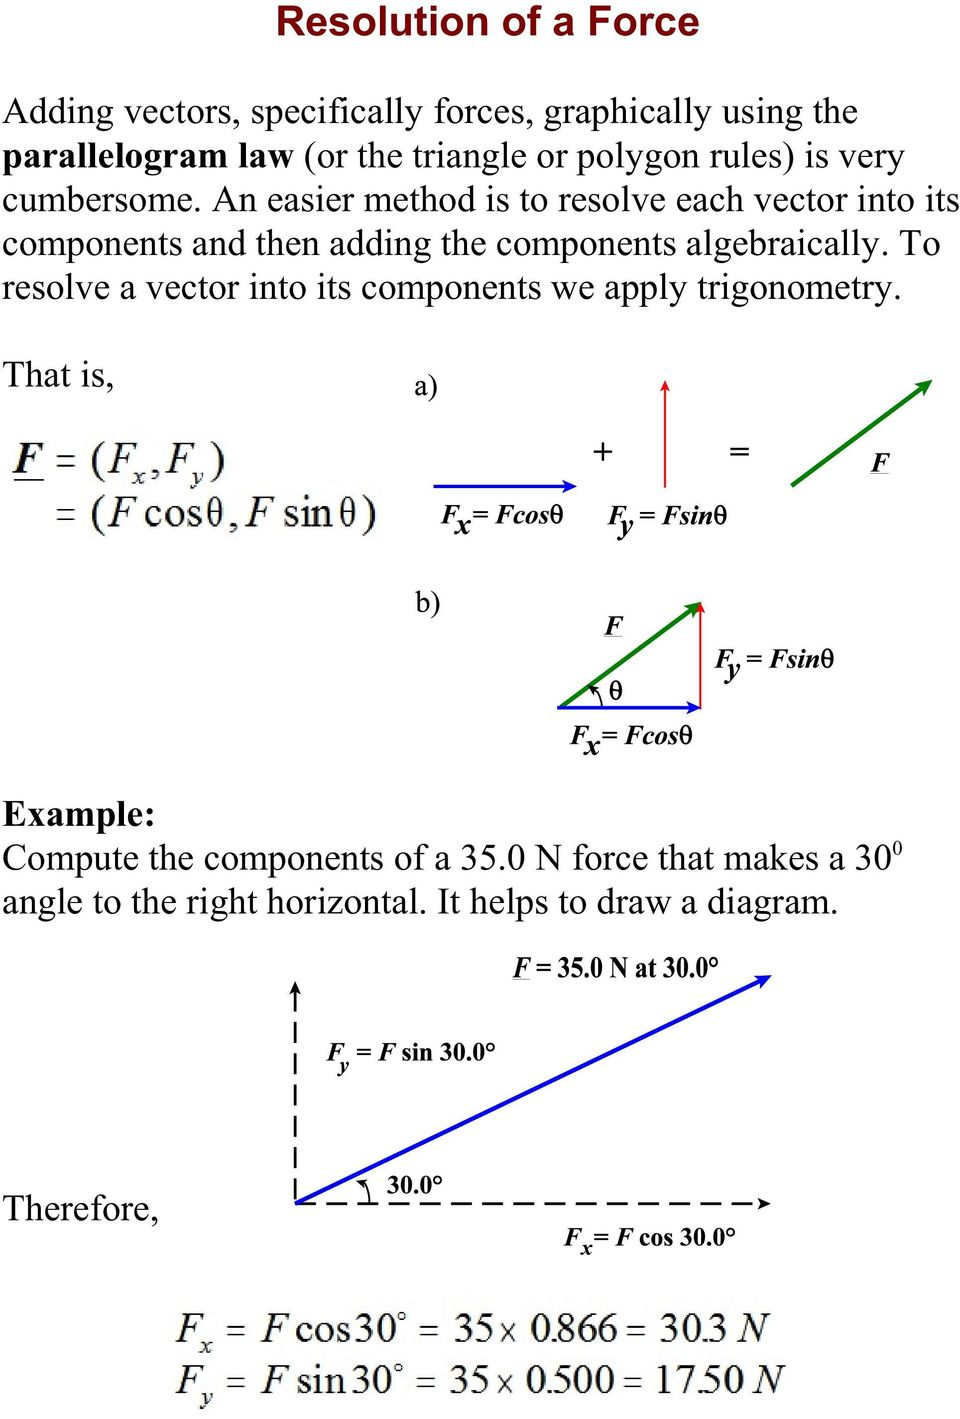 An easier method is to resolve each vector into its components and then adding the components algebraically.